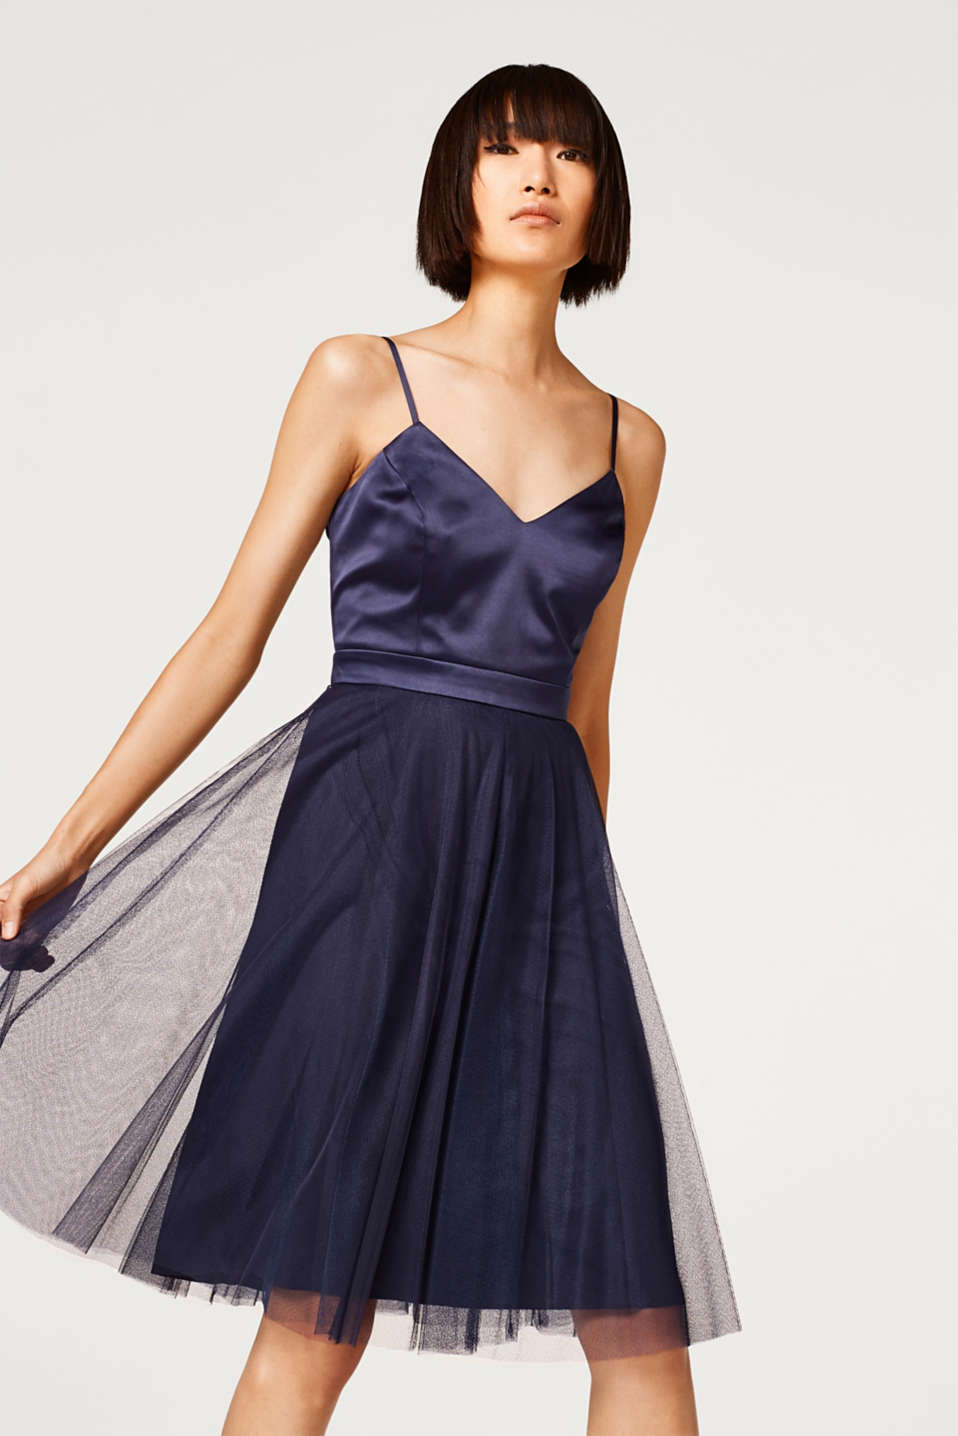 Esprit - 2-In-1 dress with a tulle skirt and a satin top